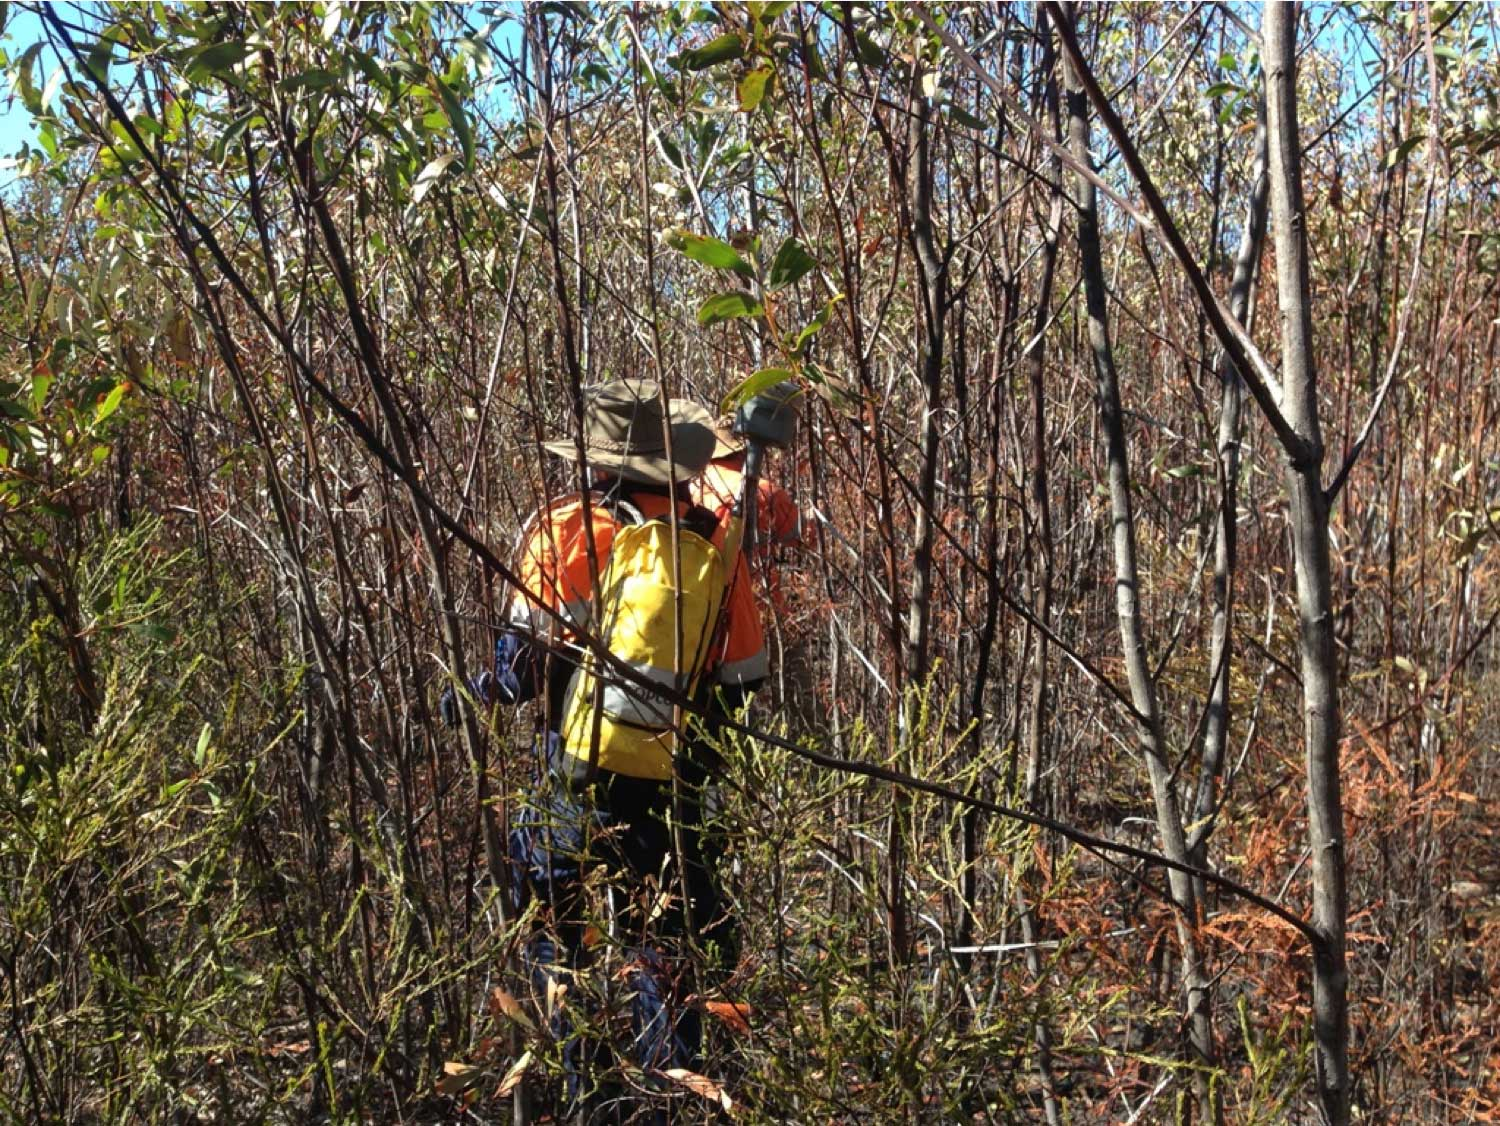 R10_Surveying in a thicket.jpg